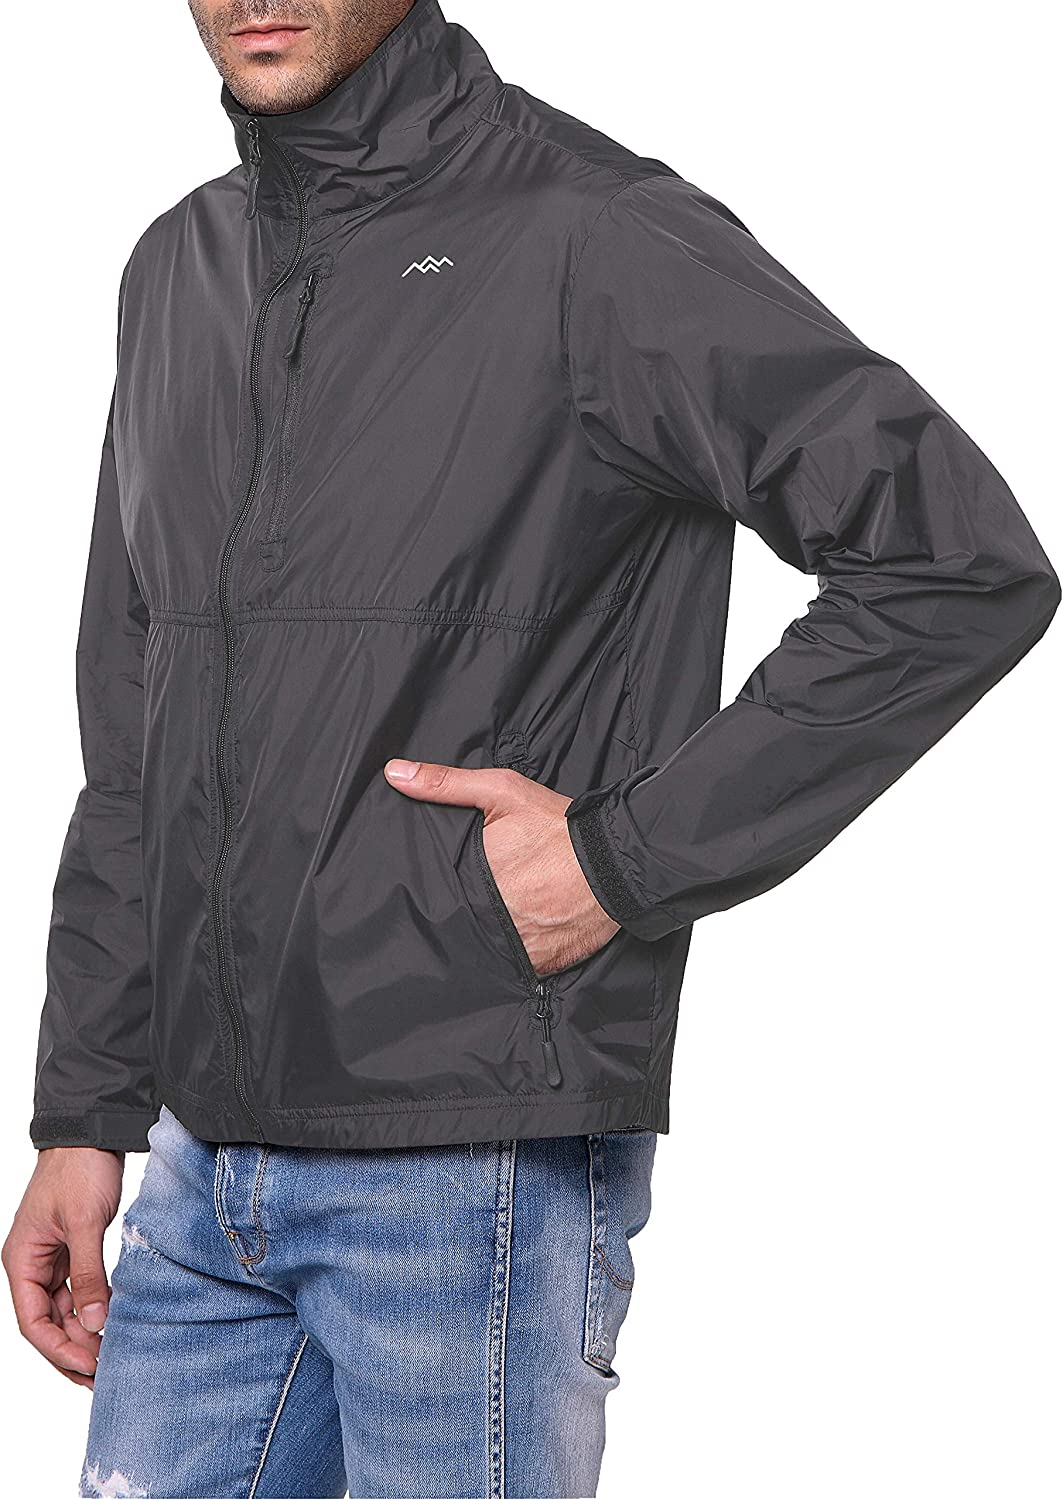 Mens Lightweight Jacket Nylon Windbreaker Jackets with Zipper Pocket TRAILSIDE SUPPLY CO